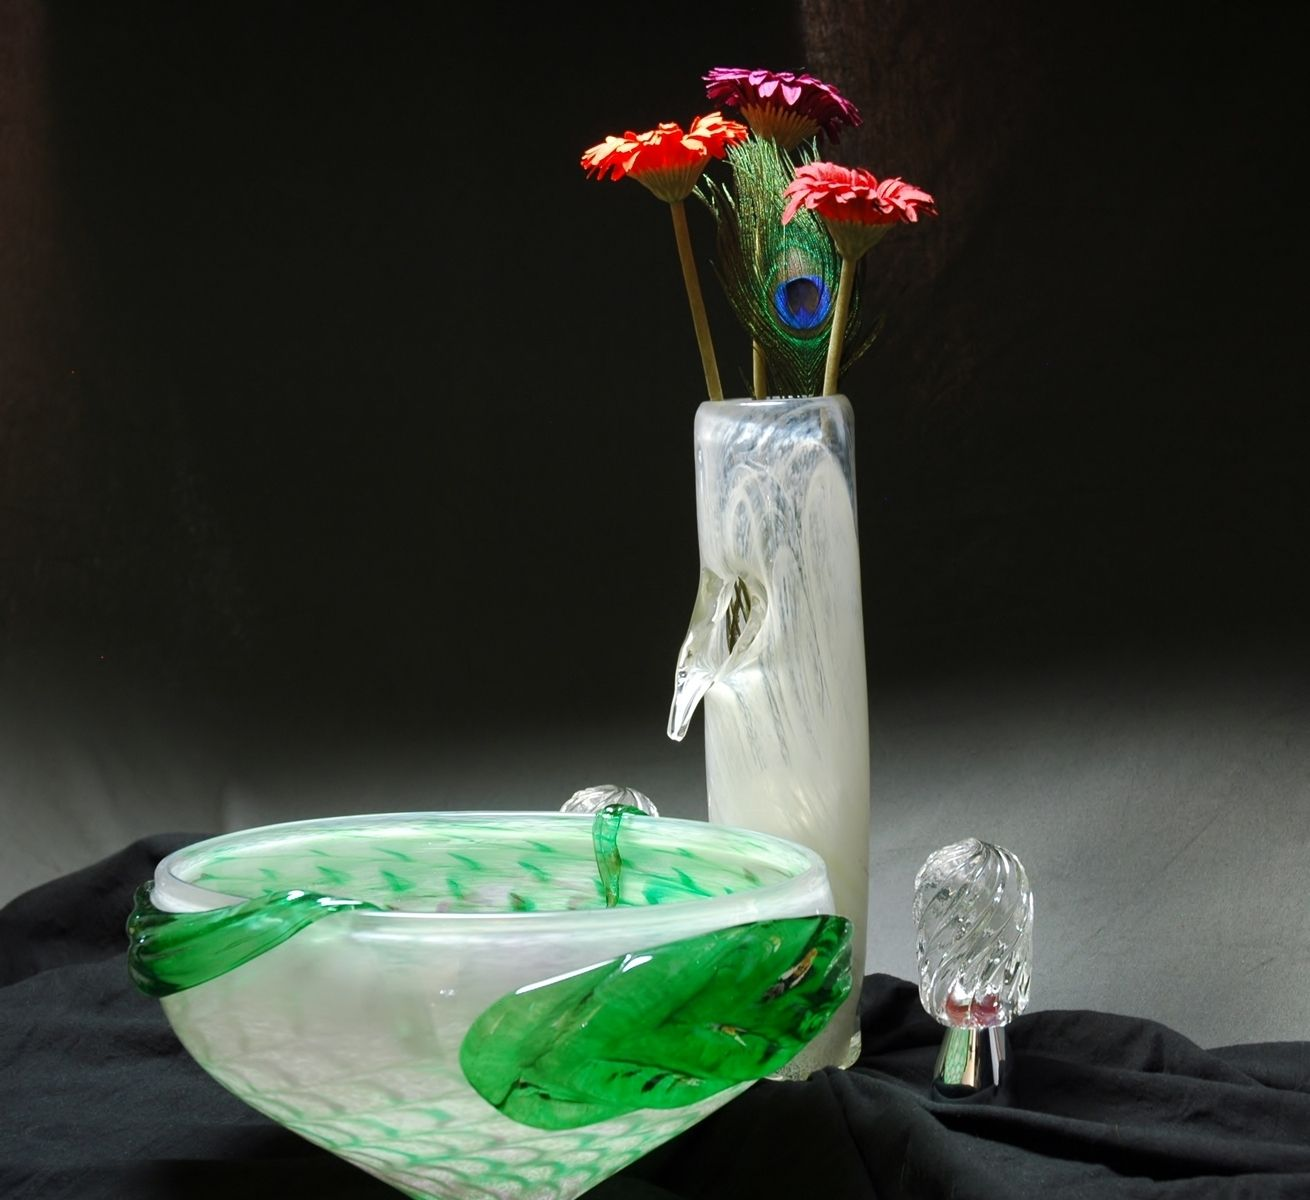 Hand Crafted Glass Faucet By Zero Gravity Creations